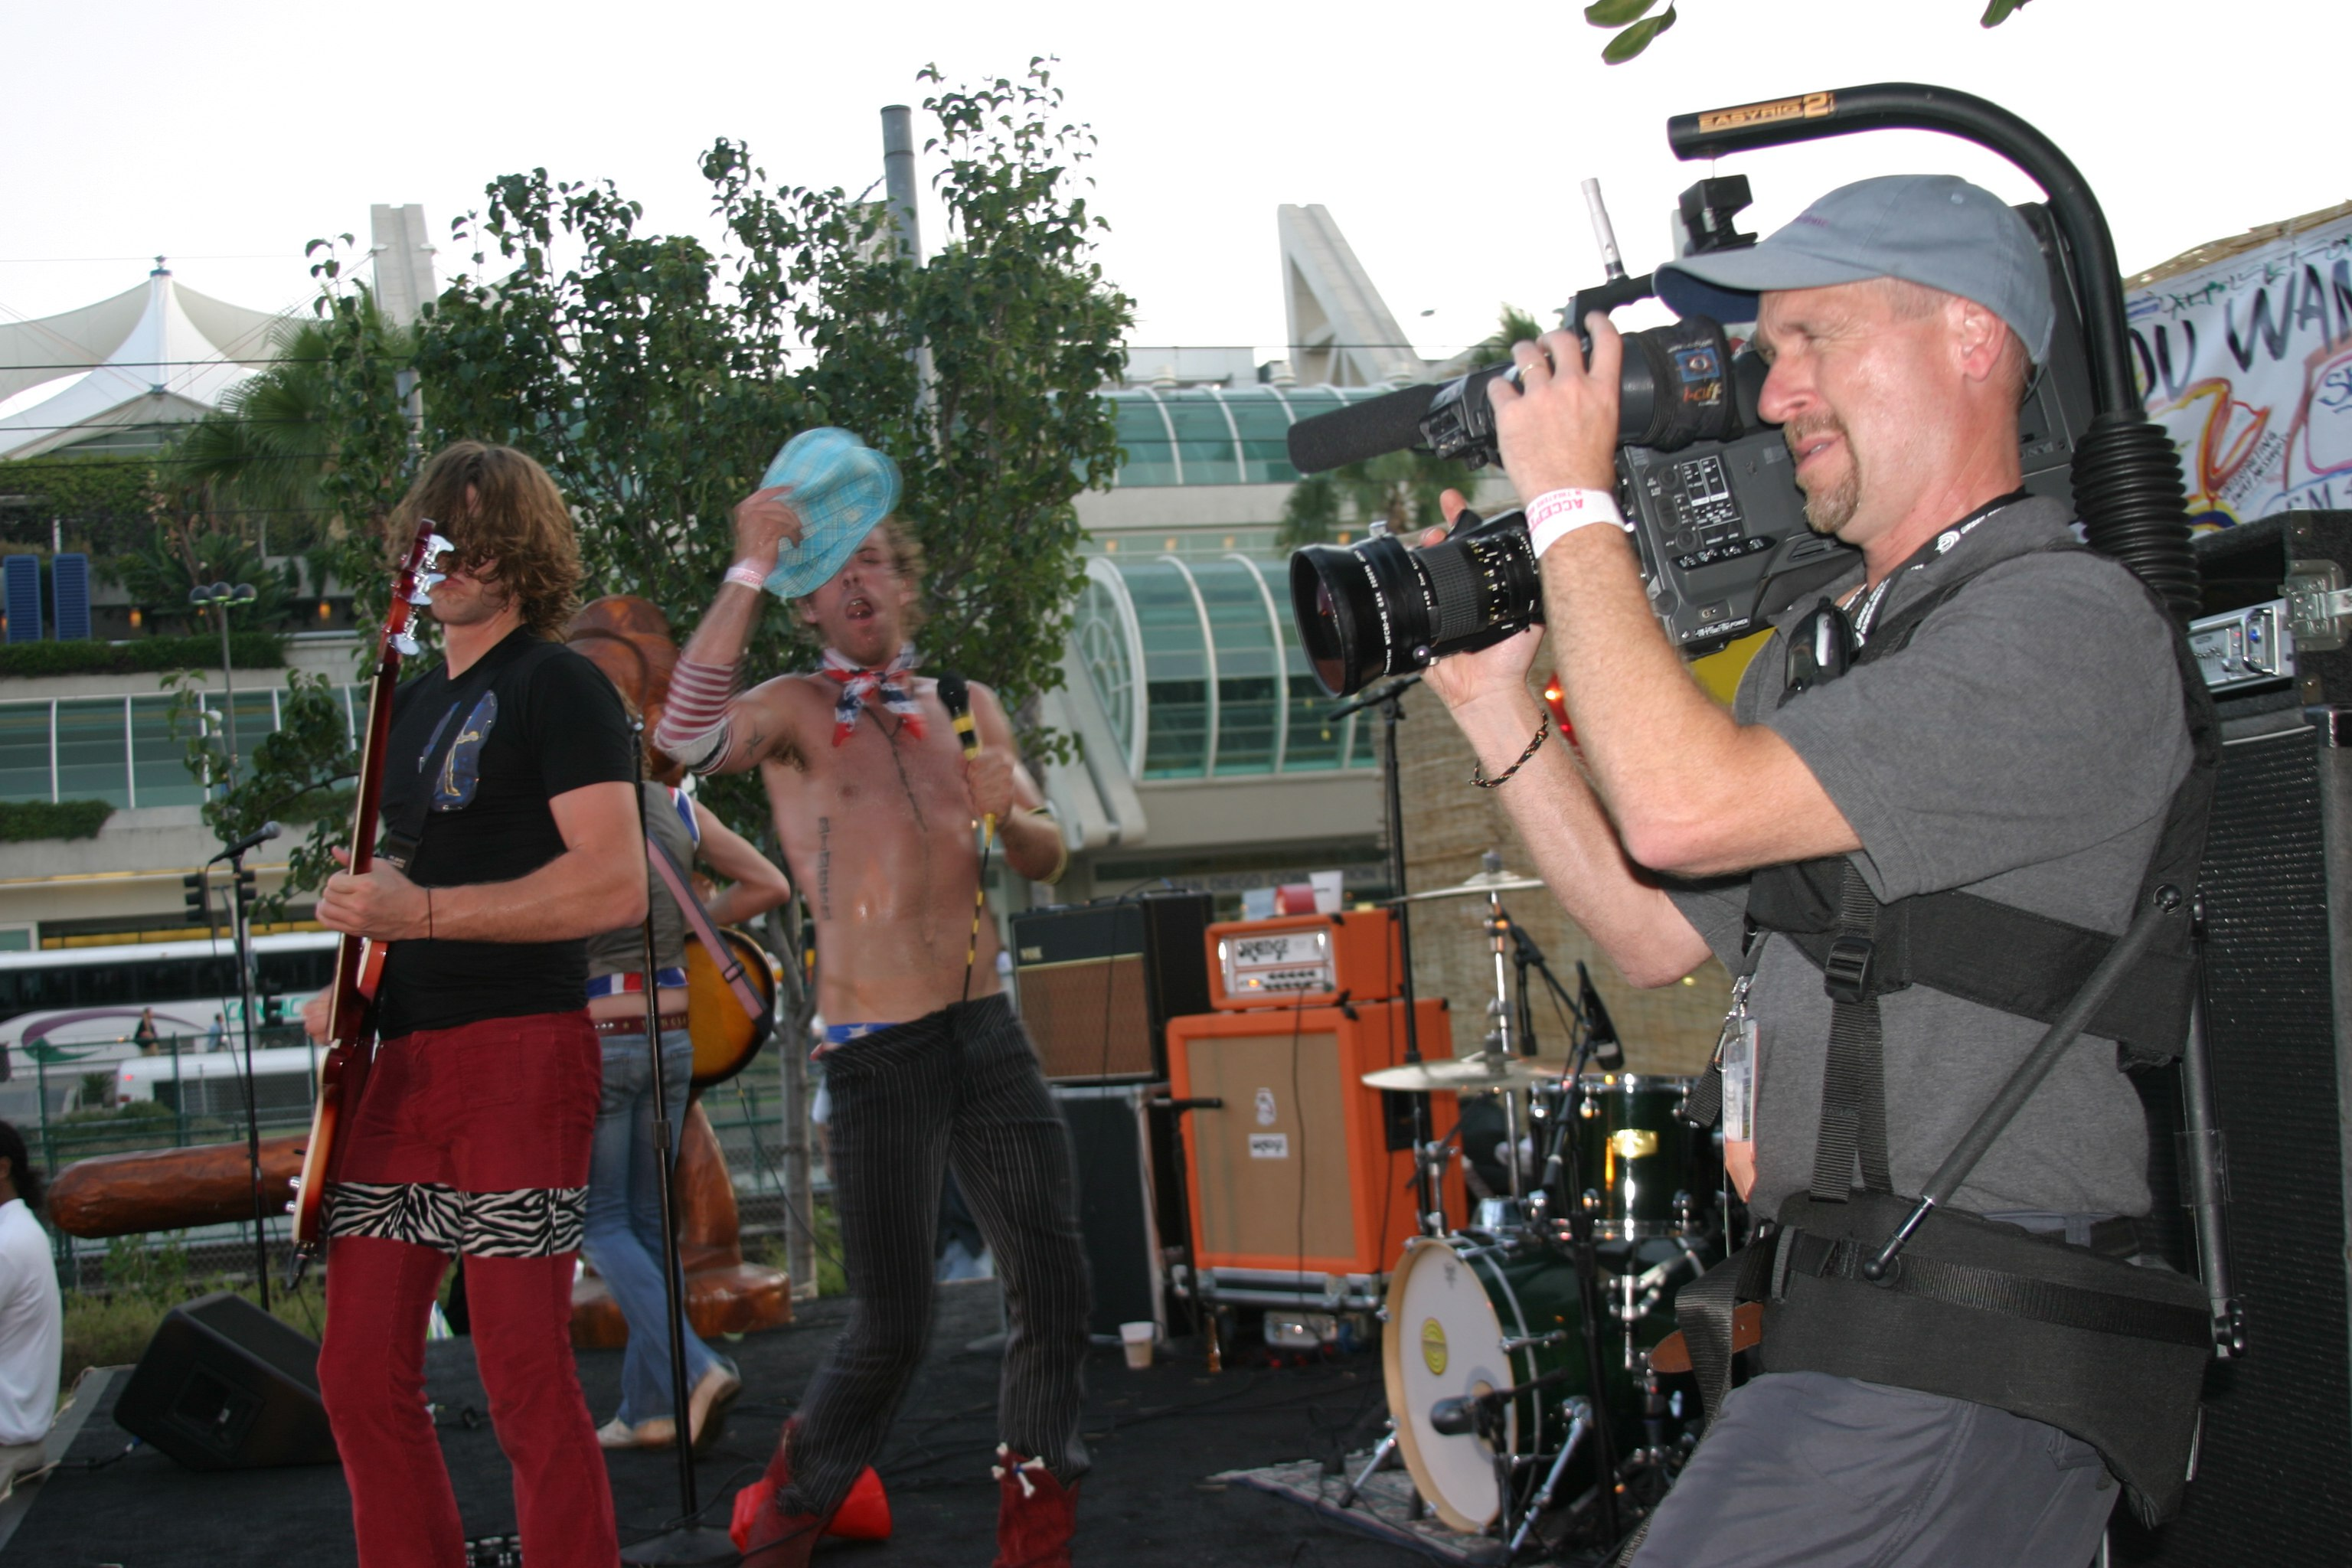 Joe Hursley and Ringers at San Diego Comic Con videotaped by DP Mark Schulze